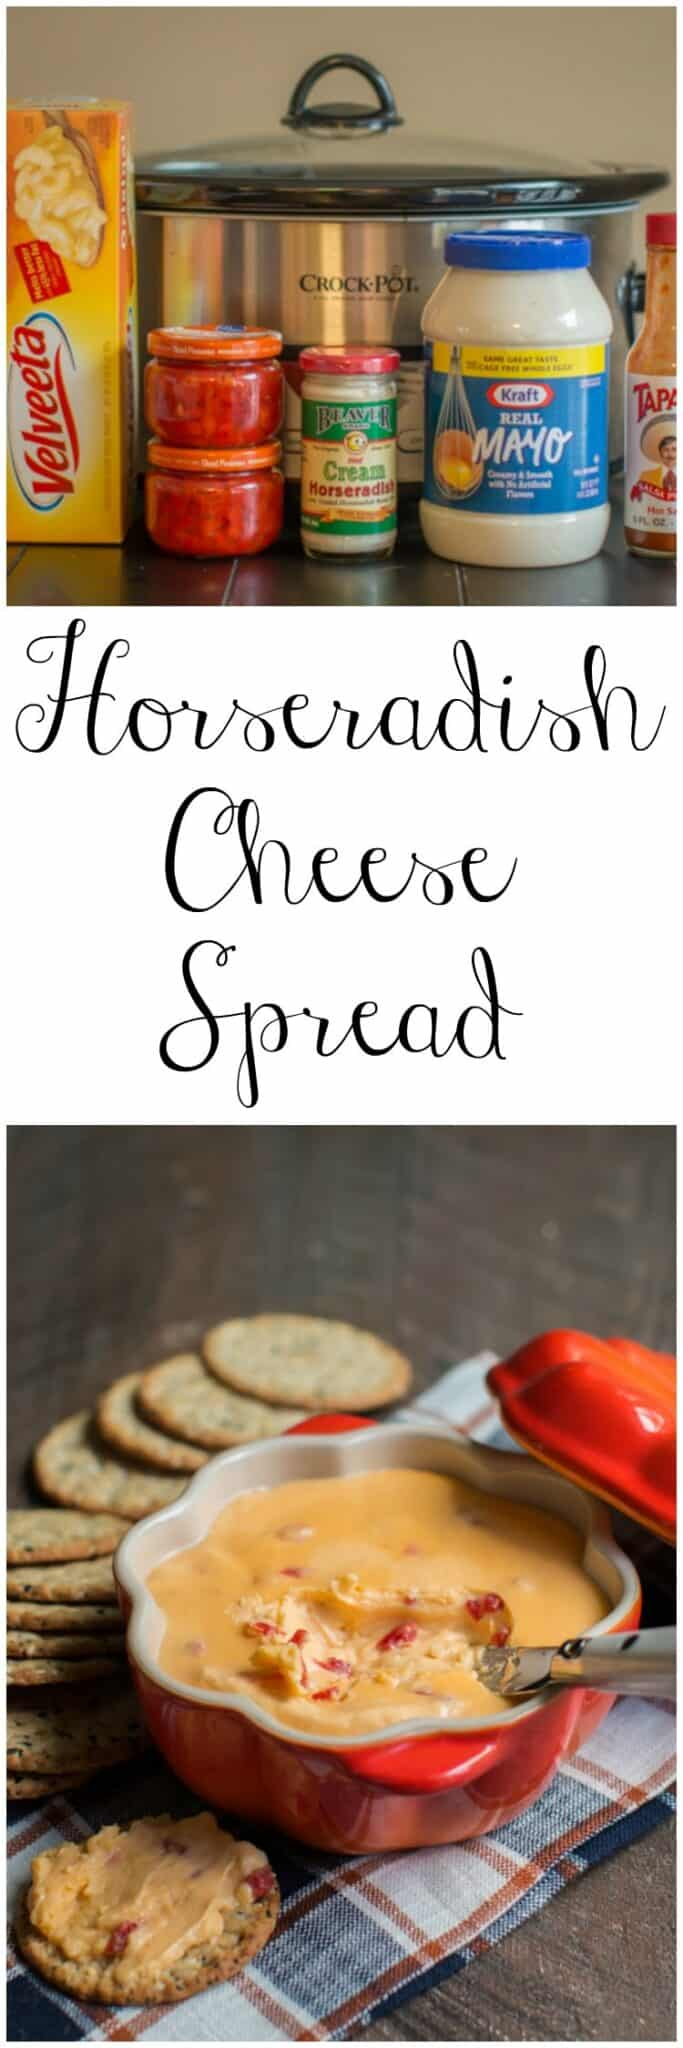 Horseradish Cheese Spread